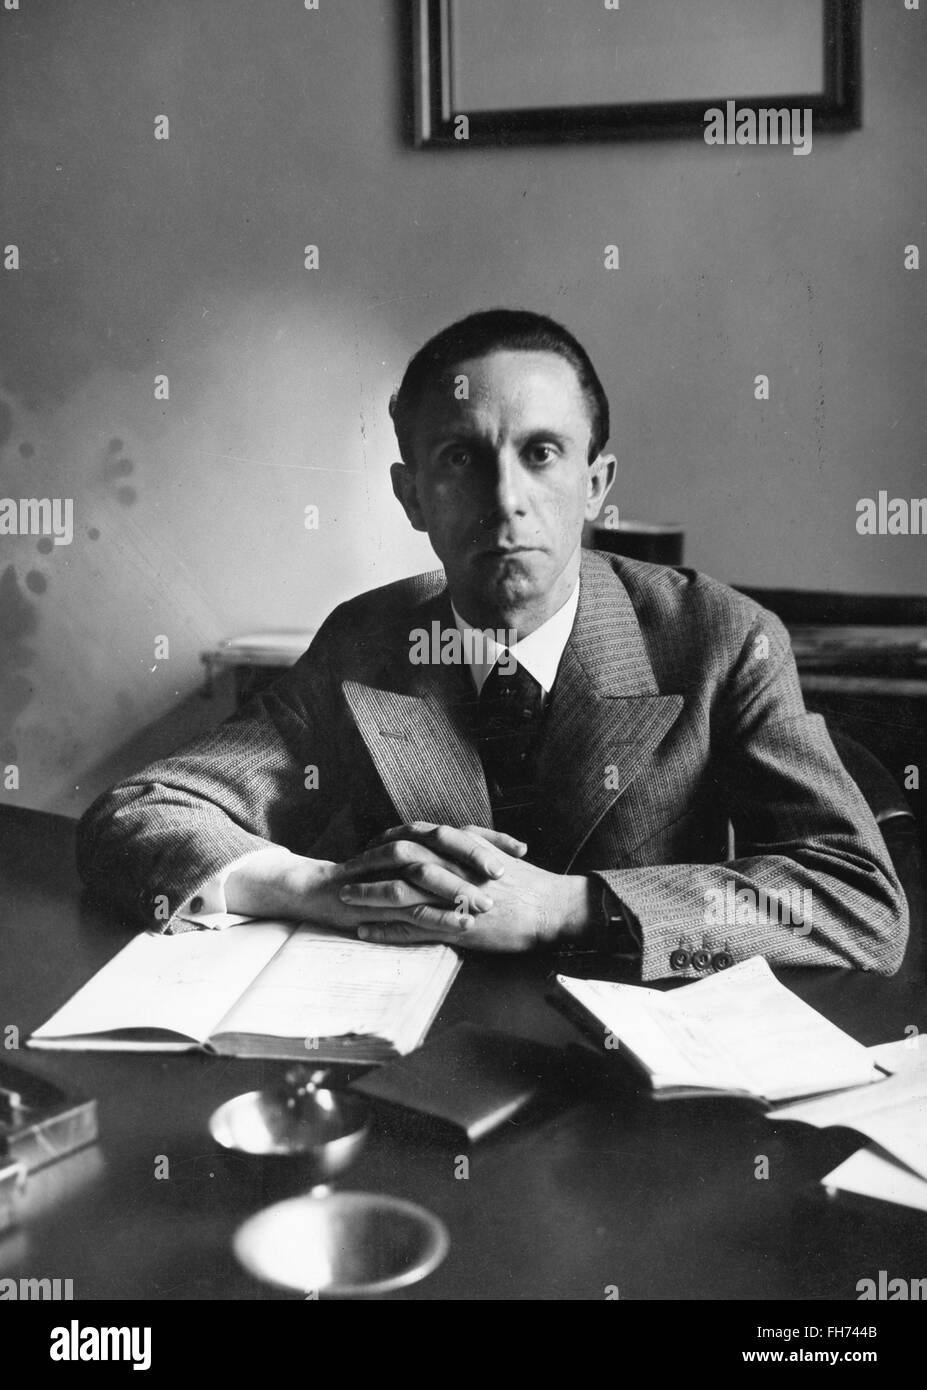 dr joseph goebbels and the nazi propaganda Joseph goebbels was appointed reich minister of propaganda on march 13th1933 goebbels proved to be an expert in his mastery of the dark art of prop  home » nazi germany » joseph goebbels.